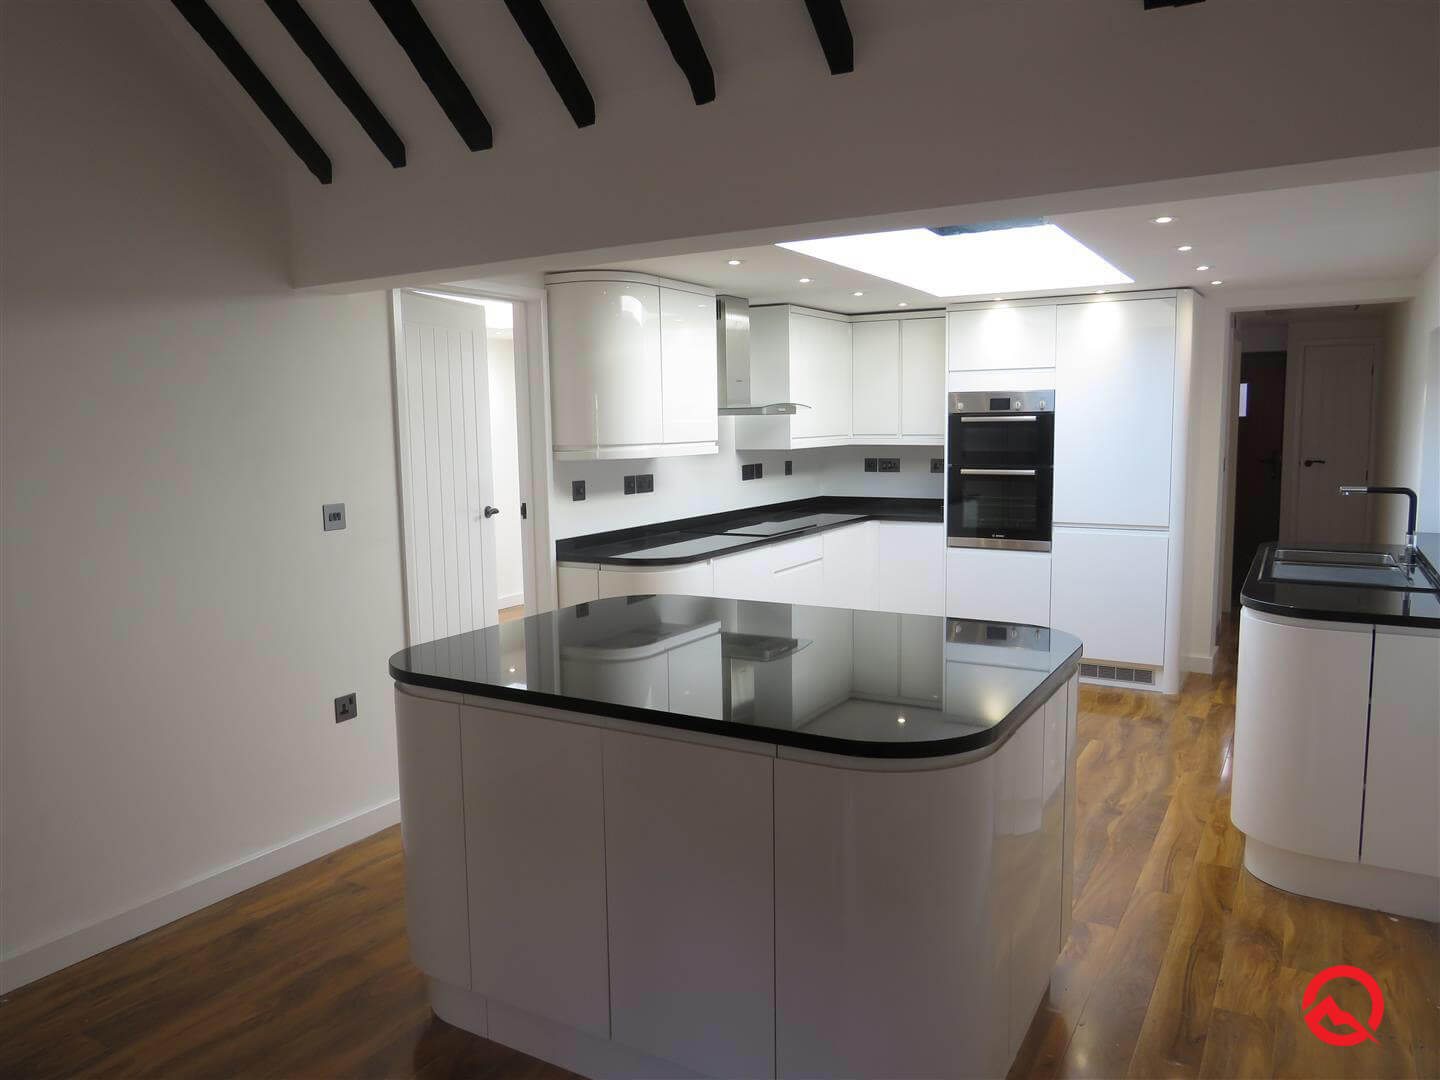 "granite quartz worktops <a href=""https://www.gqworktops.com/granite-quartz-worktops-chester/"">Chester</a>"